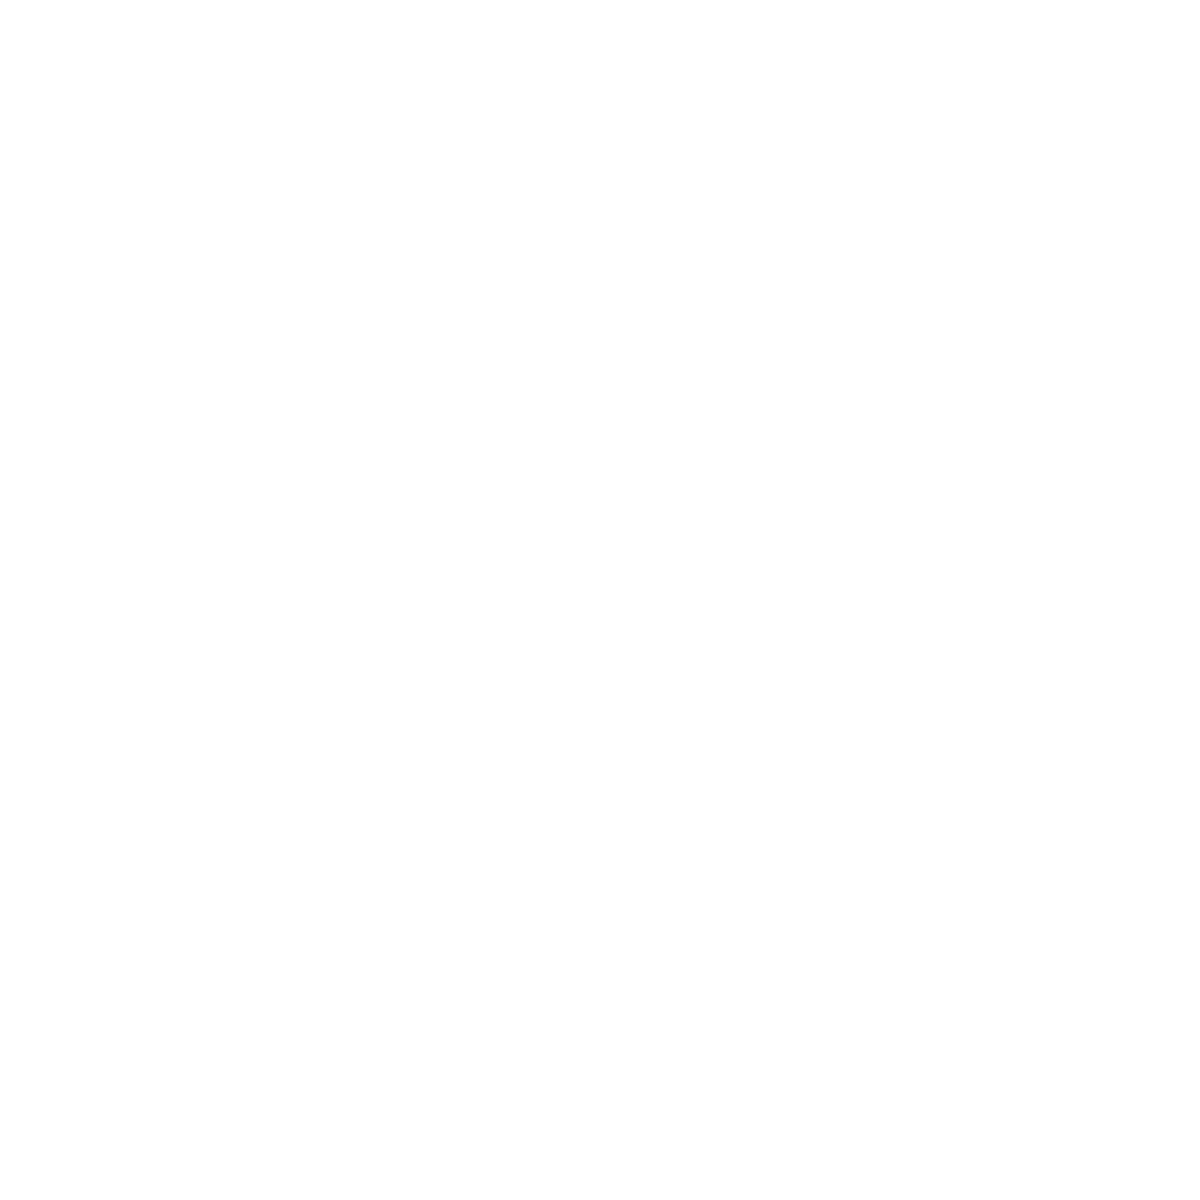 We are open everyday!